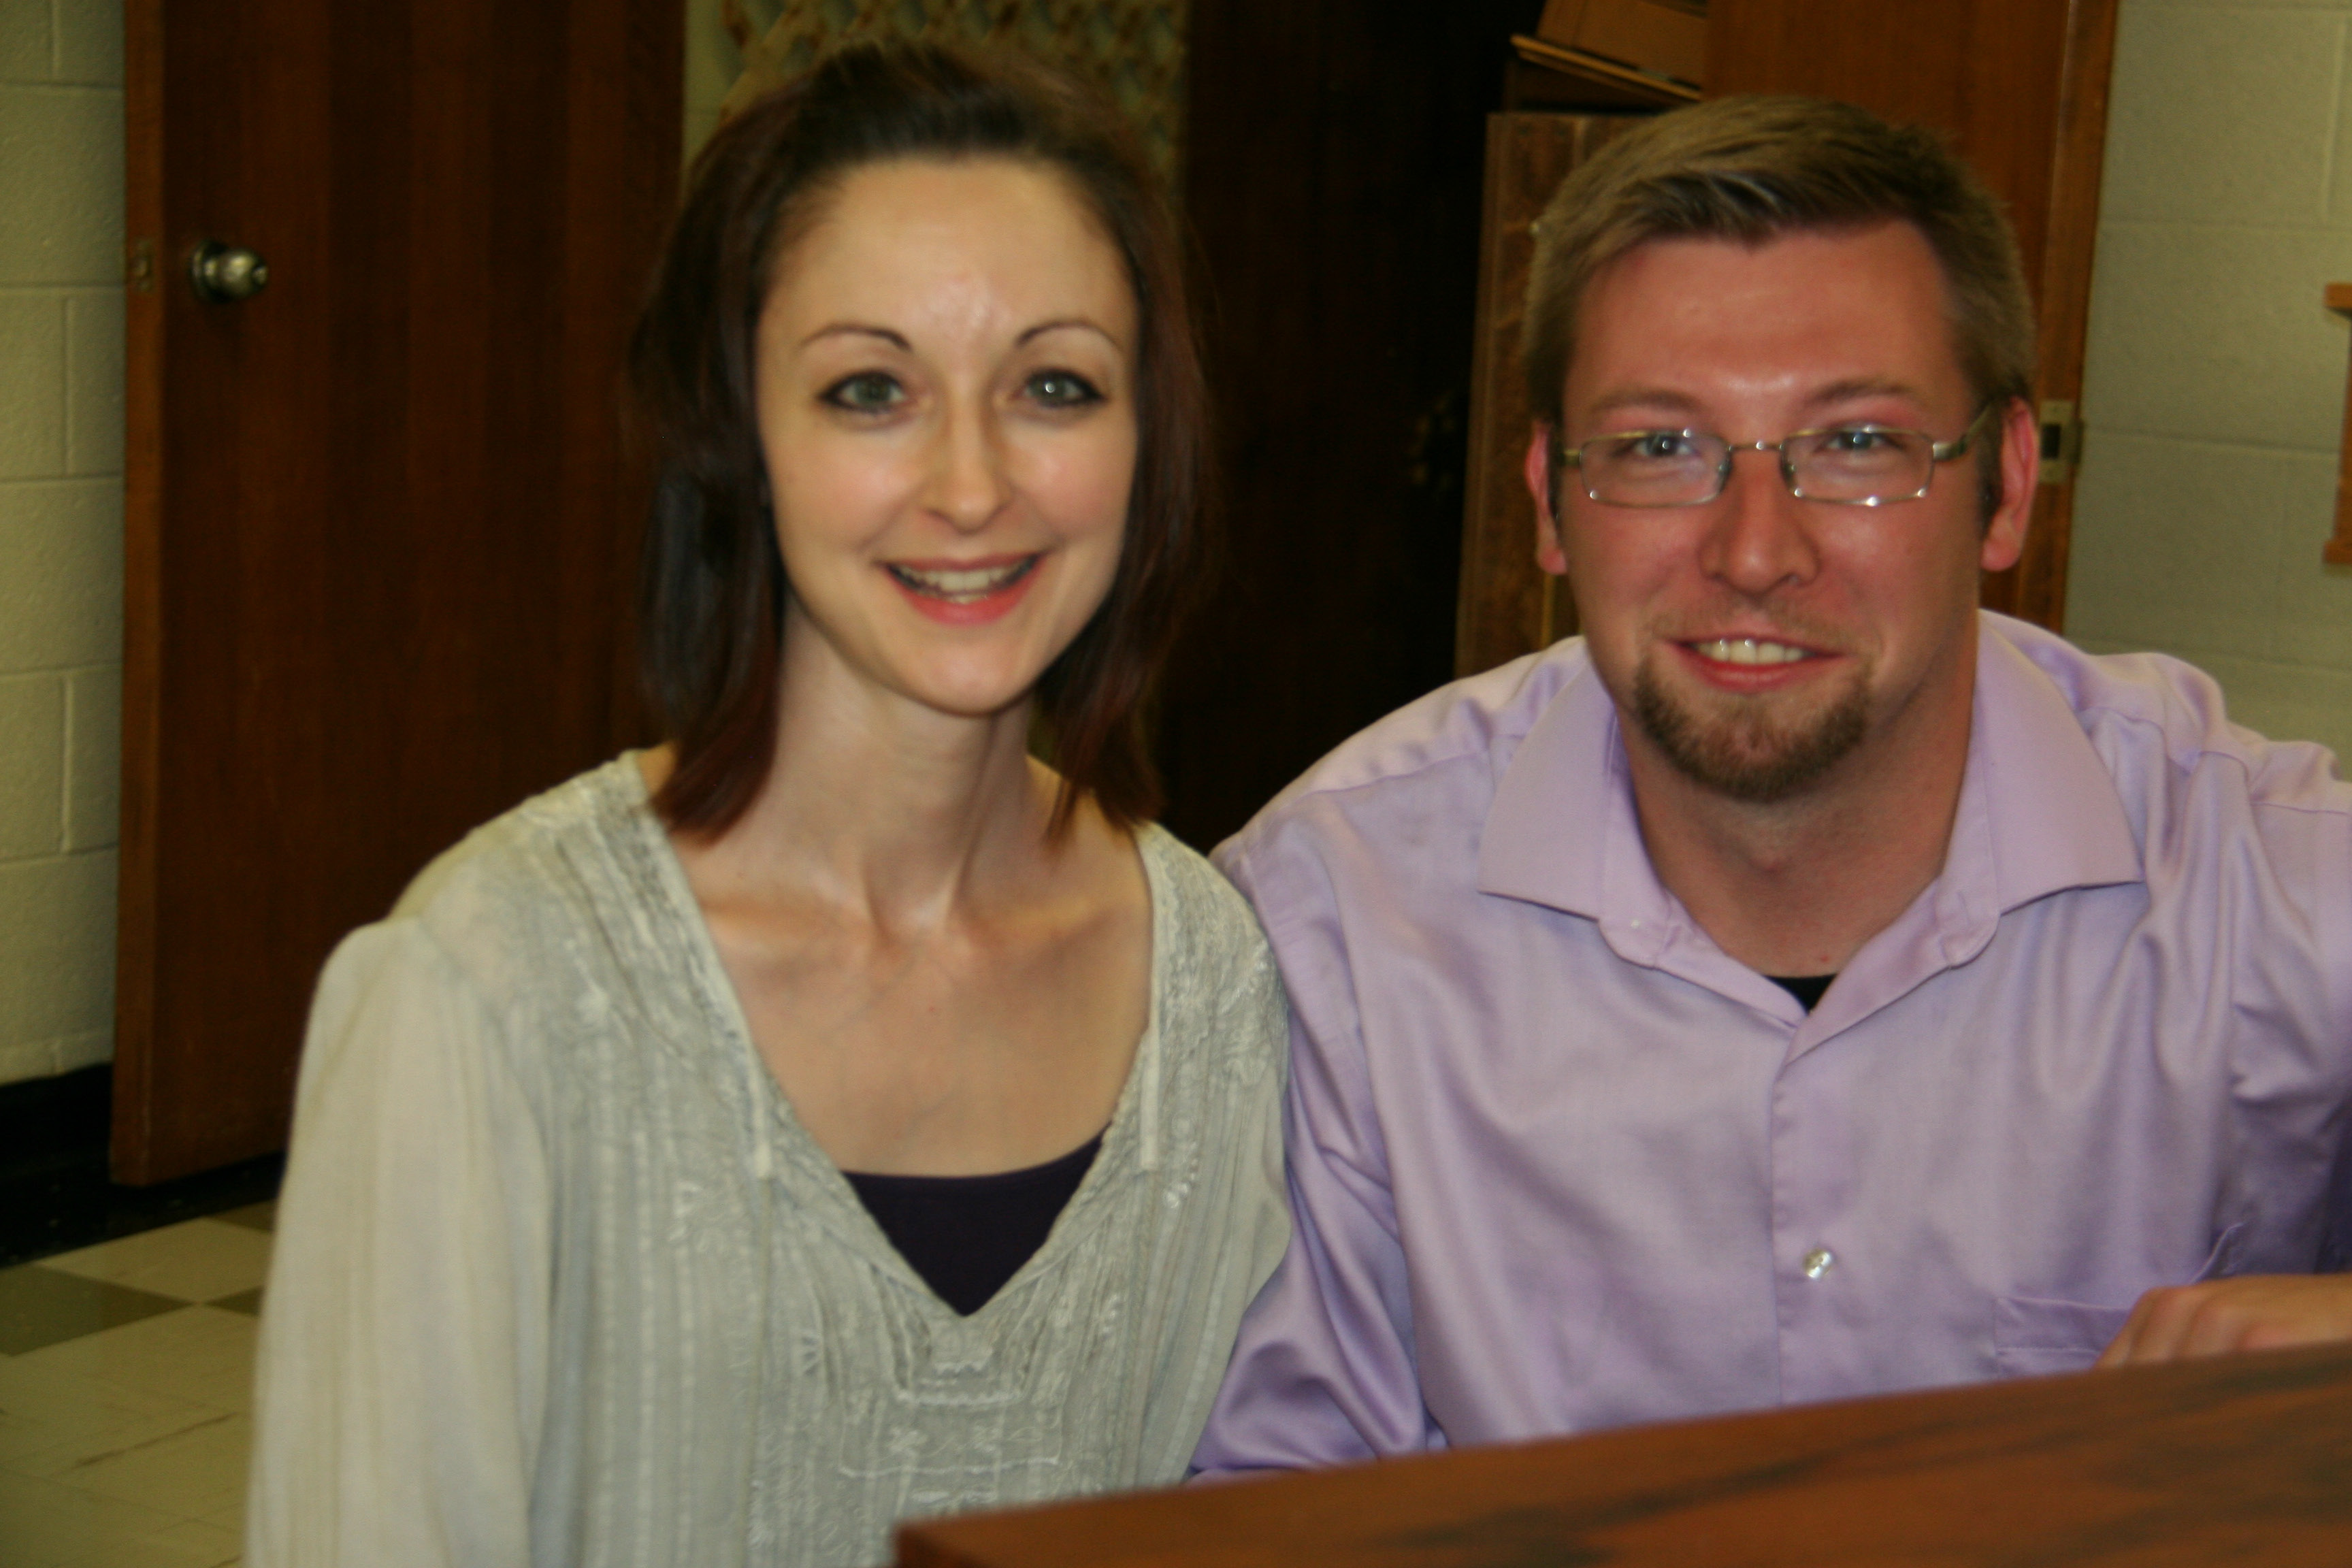 Thomas Buckley and Kelly Sharp bring a great deal of musical experience to the Plainville Choral Society.